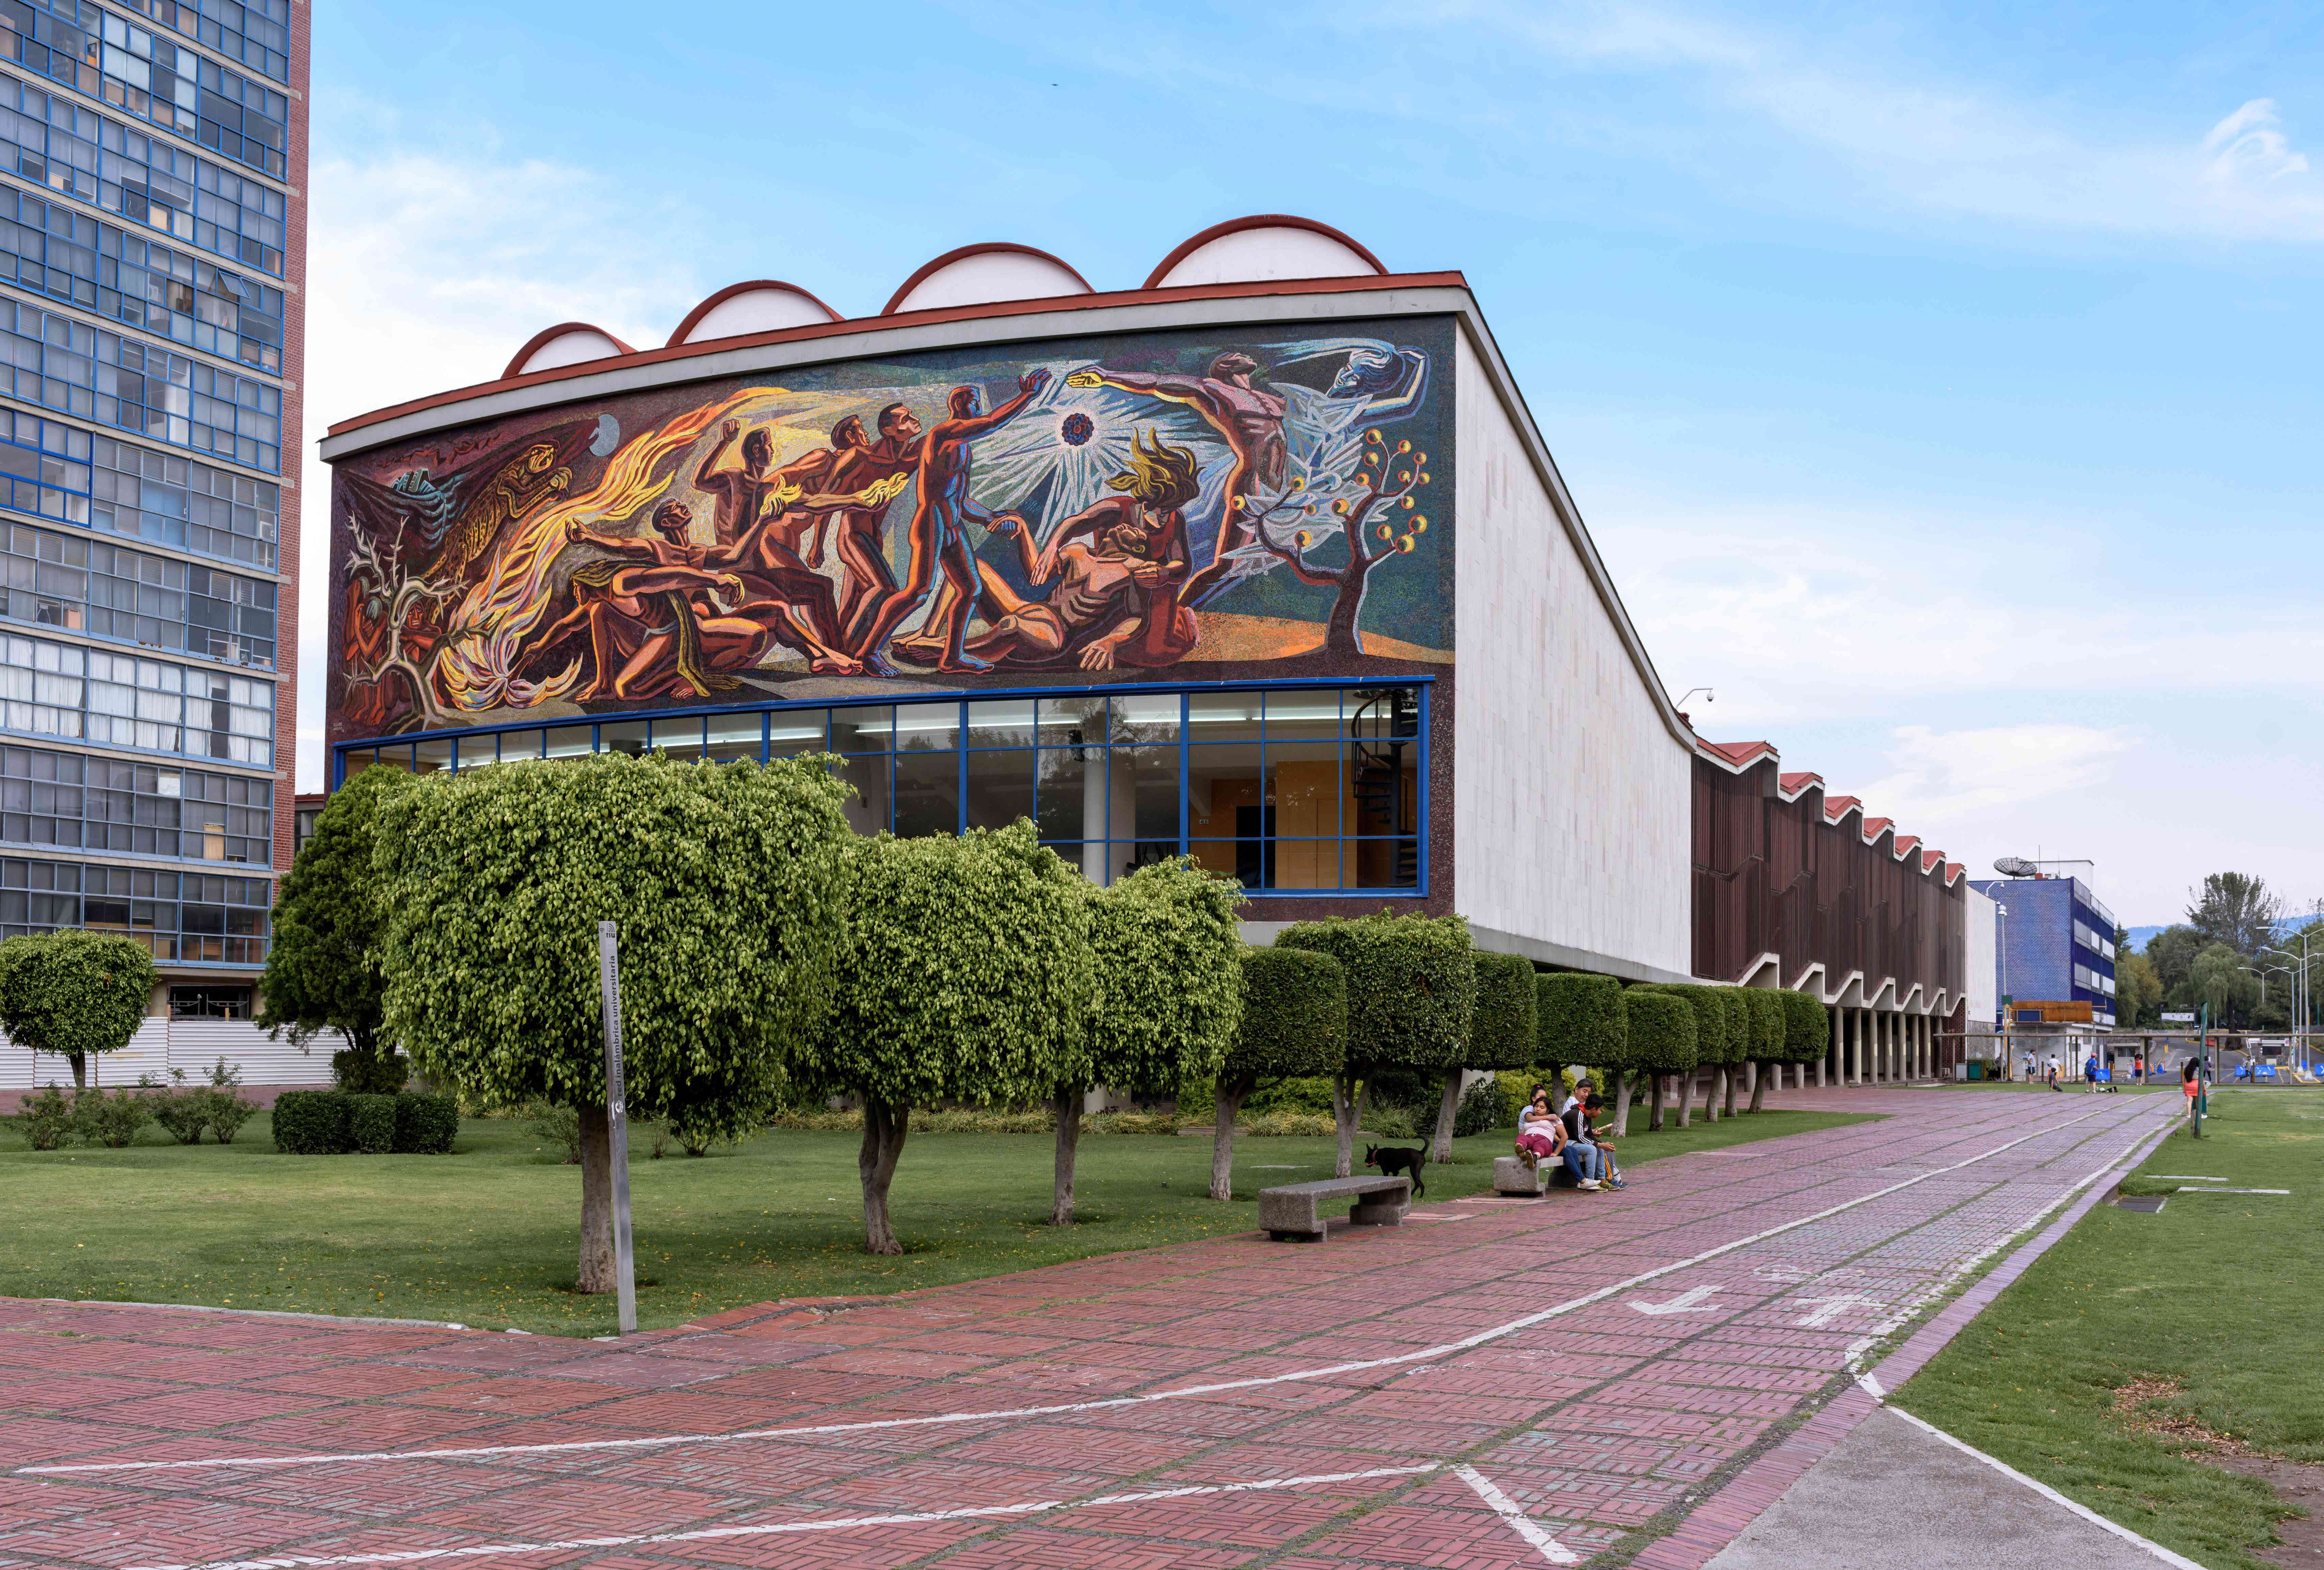 A mural on UNAM